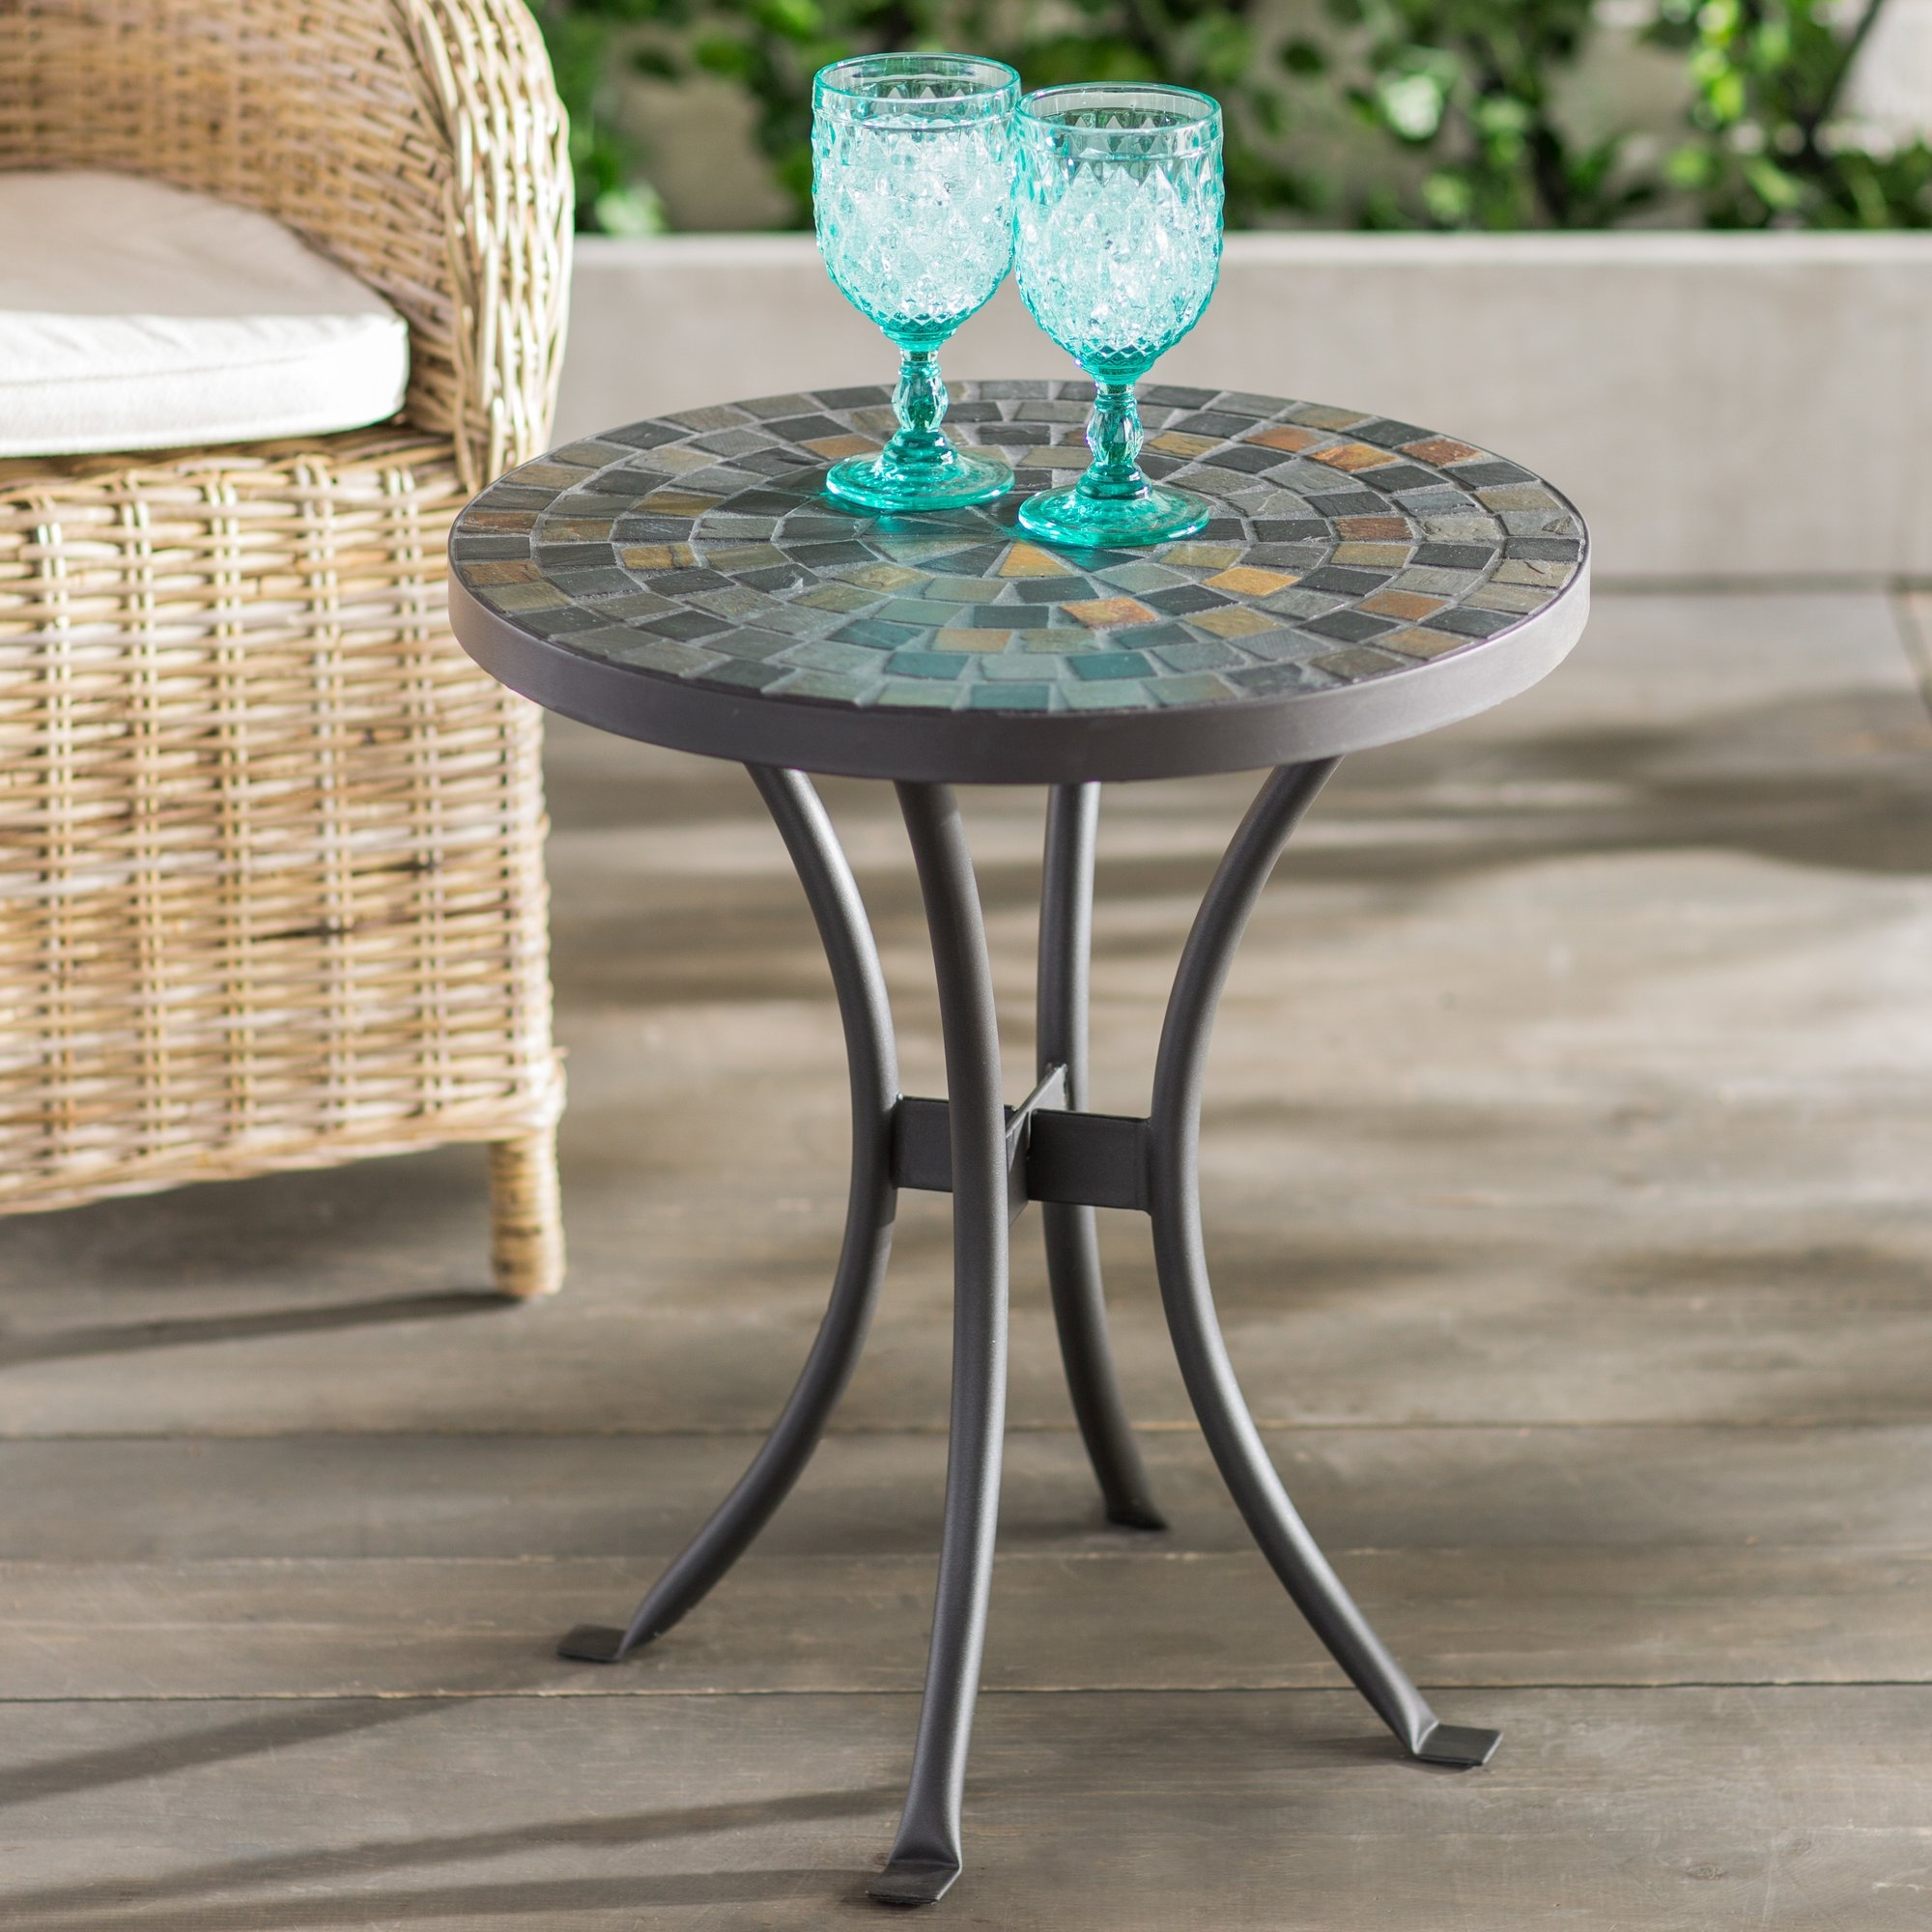 outdoor mosaic side table accent round coffee tables for small patio brie beachcrest home res balcony new black mirrored hurricane lamp aluminum bedside light affordable designer